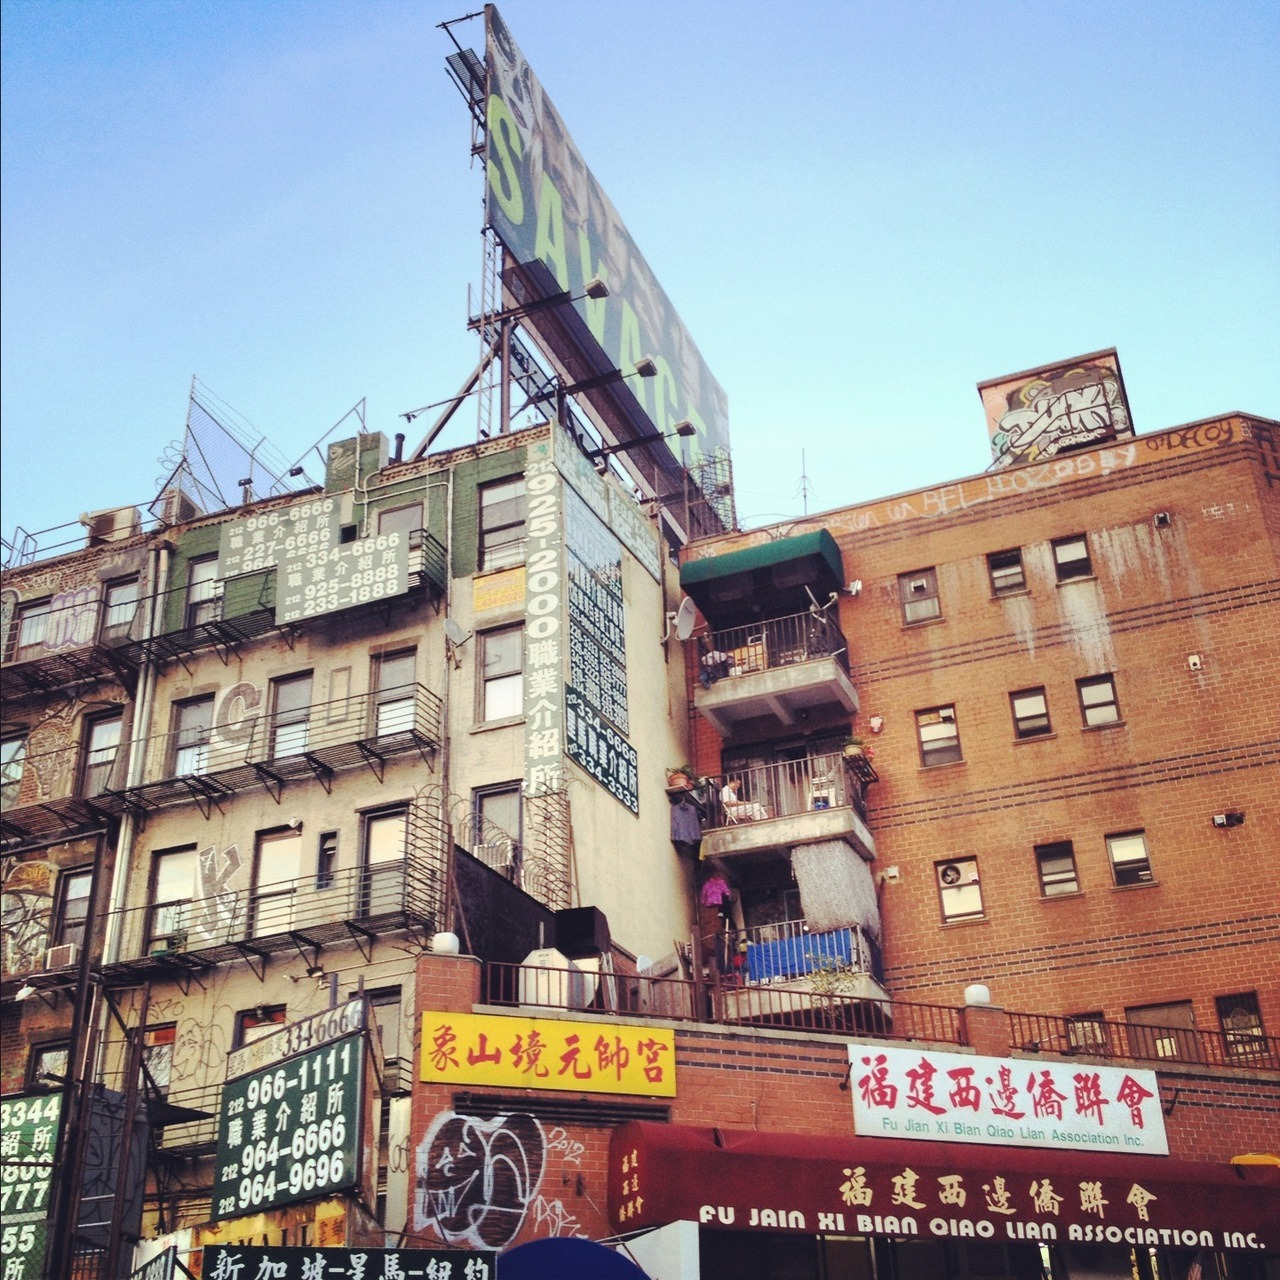 Tenement Life / Forsyth & Division St, Chinatown / New York, NY / 06.20.12 / 4:43PM